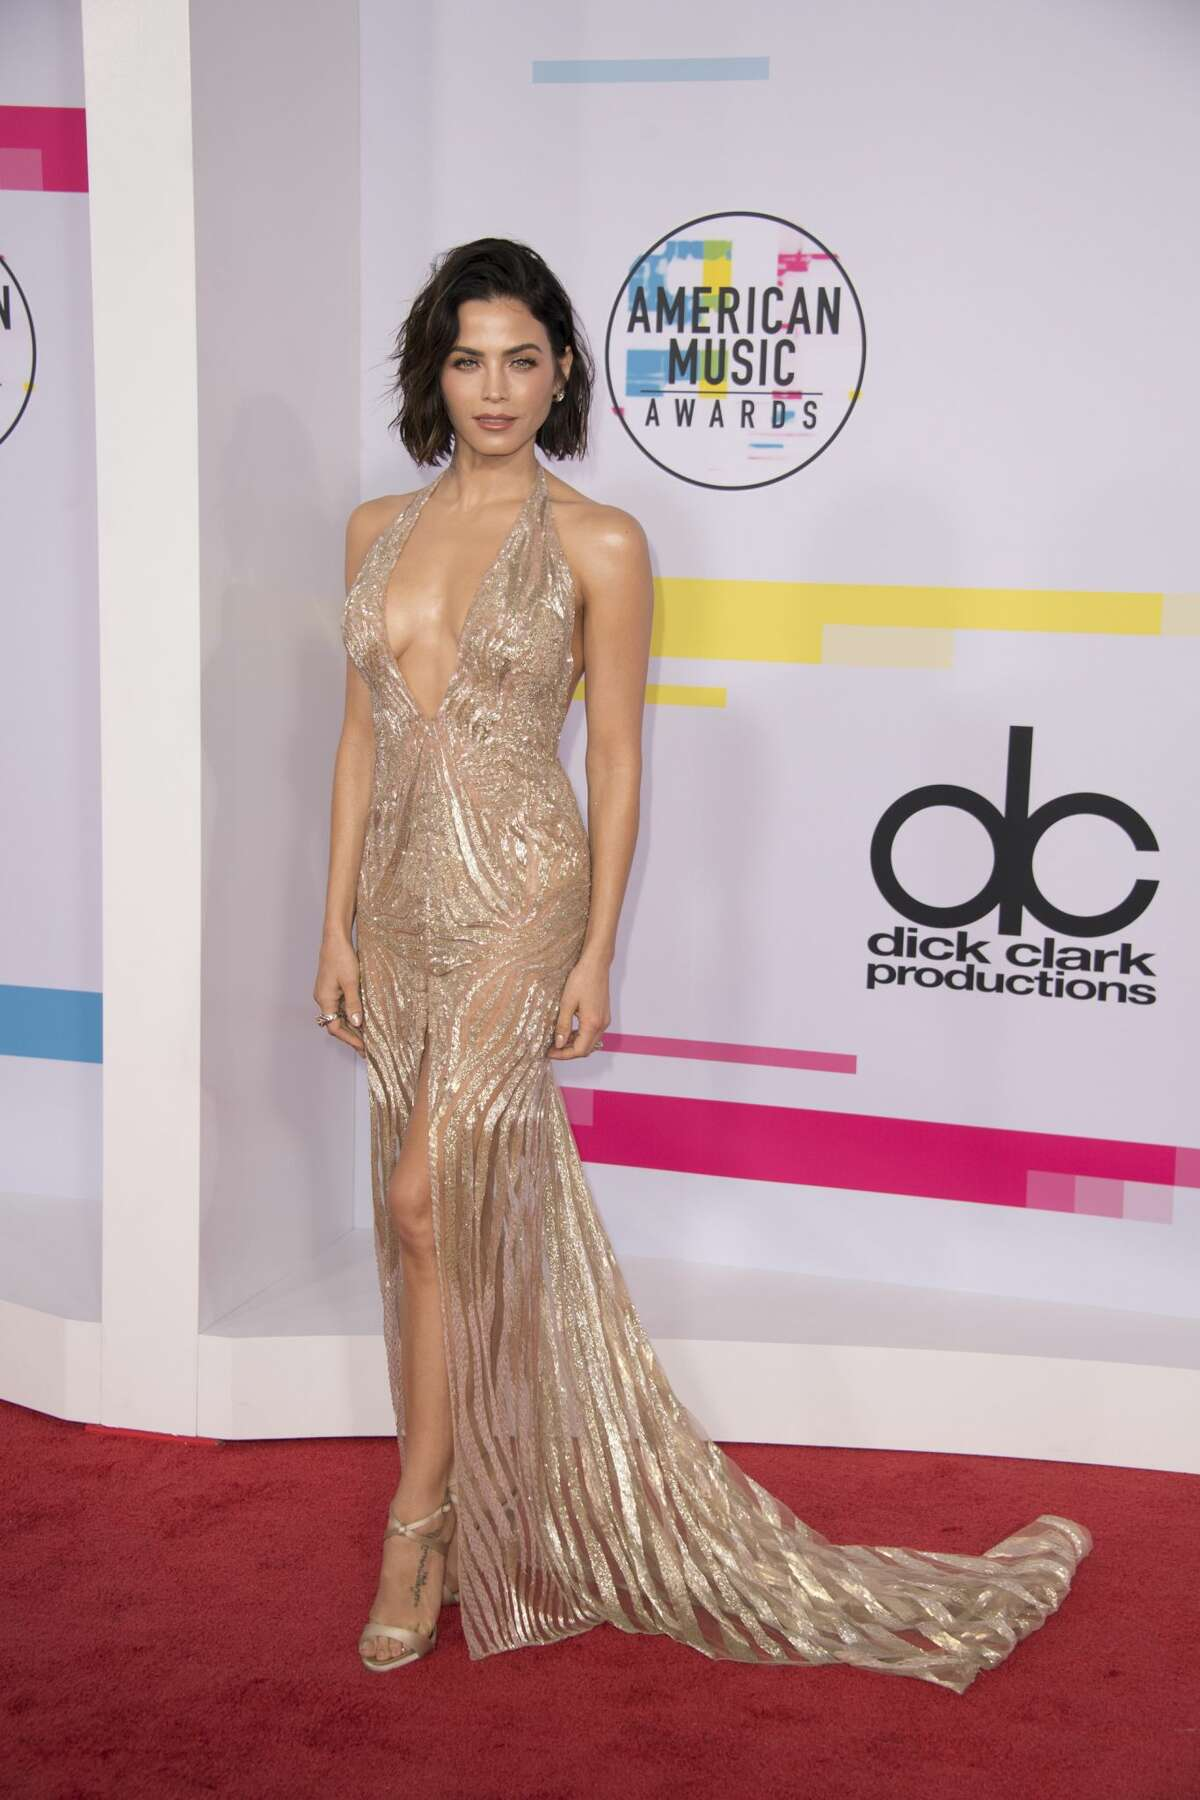 Best: Jenna Dewan Tatum took the AMAs to Oscars level. This isn't even a fair fight anymore.